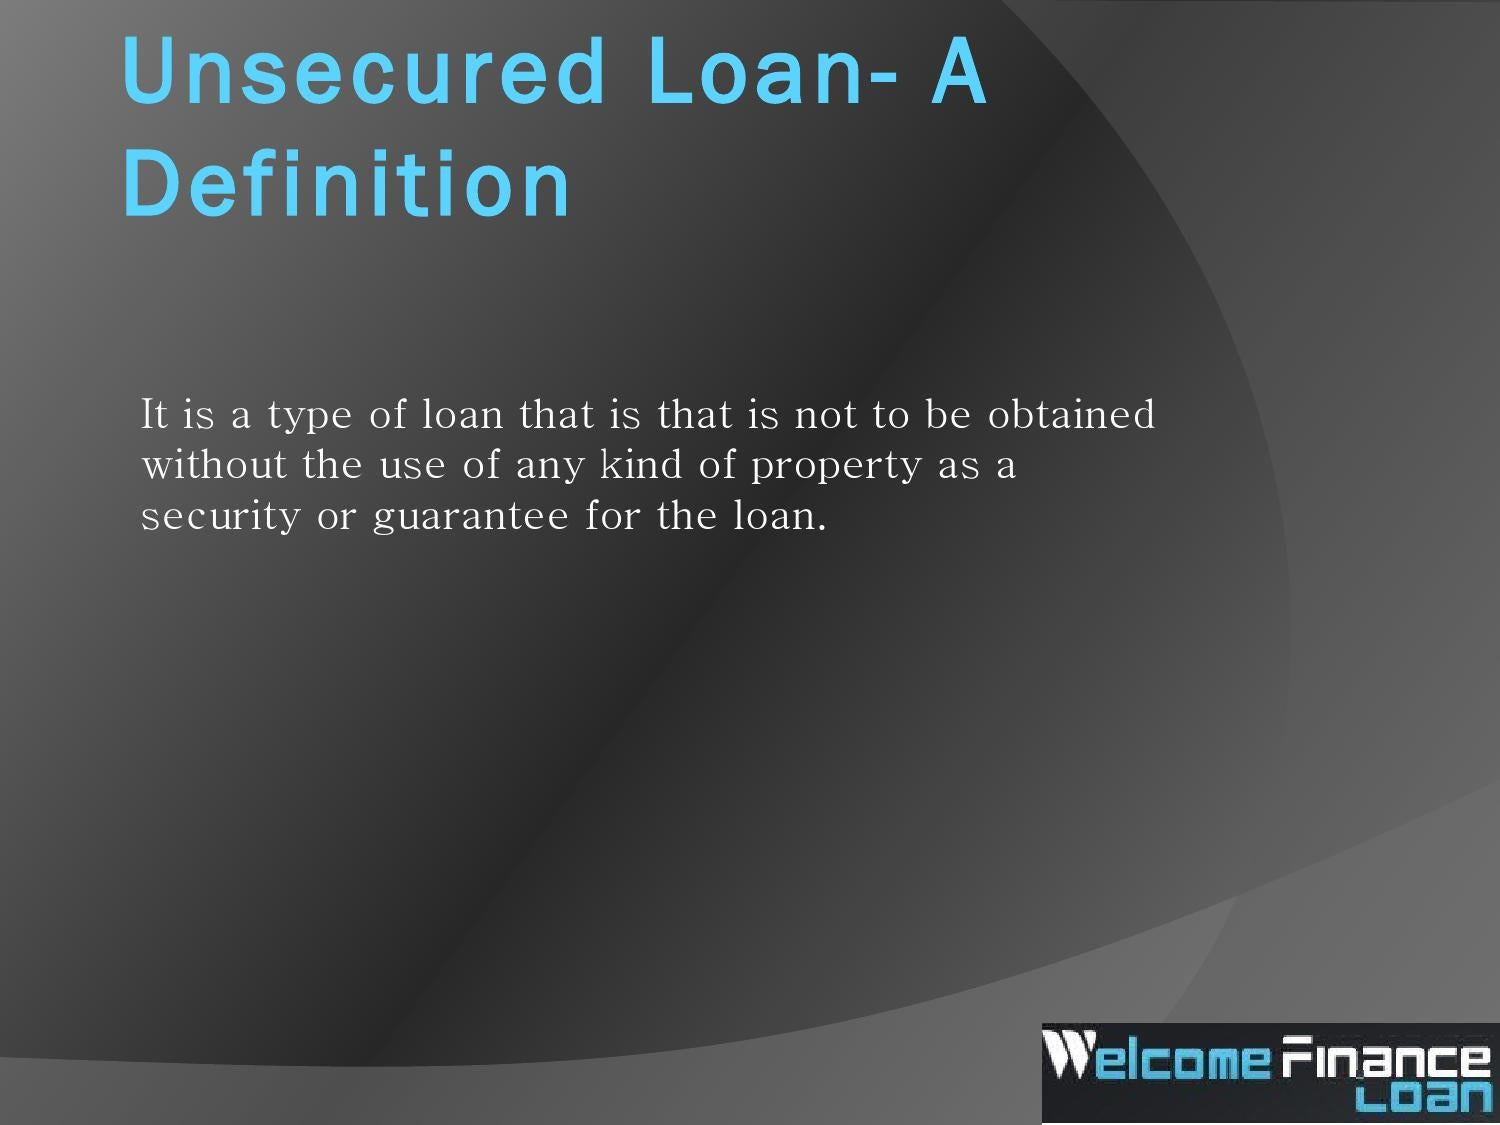 unsecured loan lenders a definition by albertfrancis - issuu